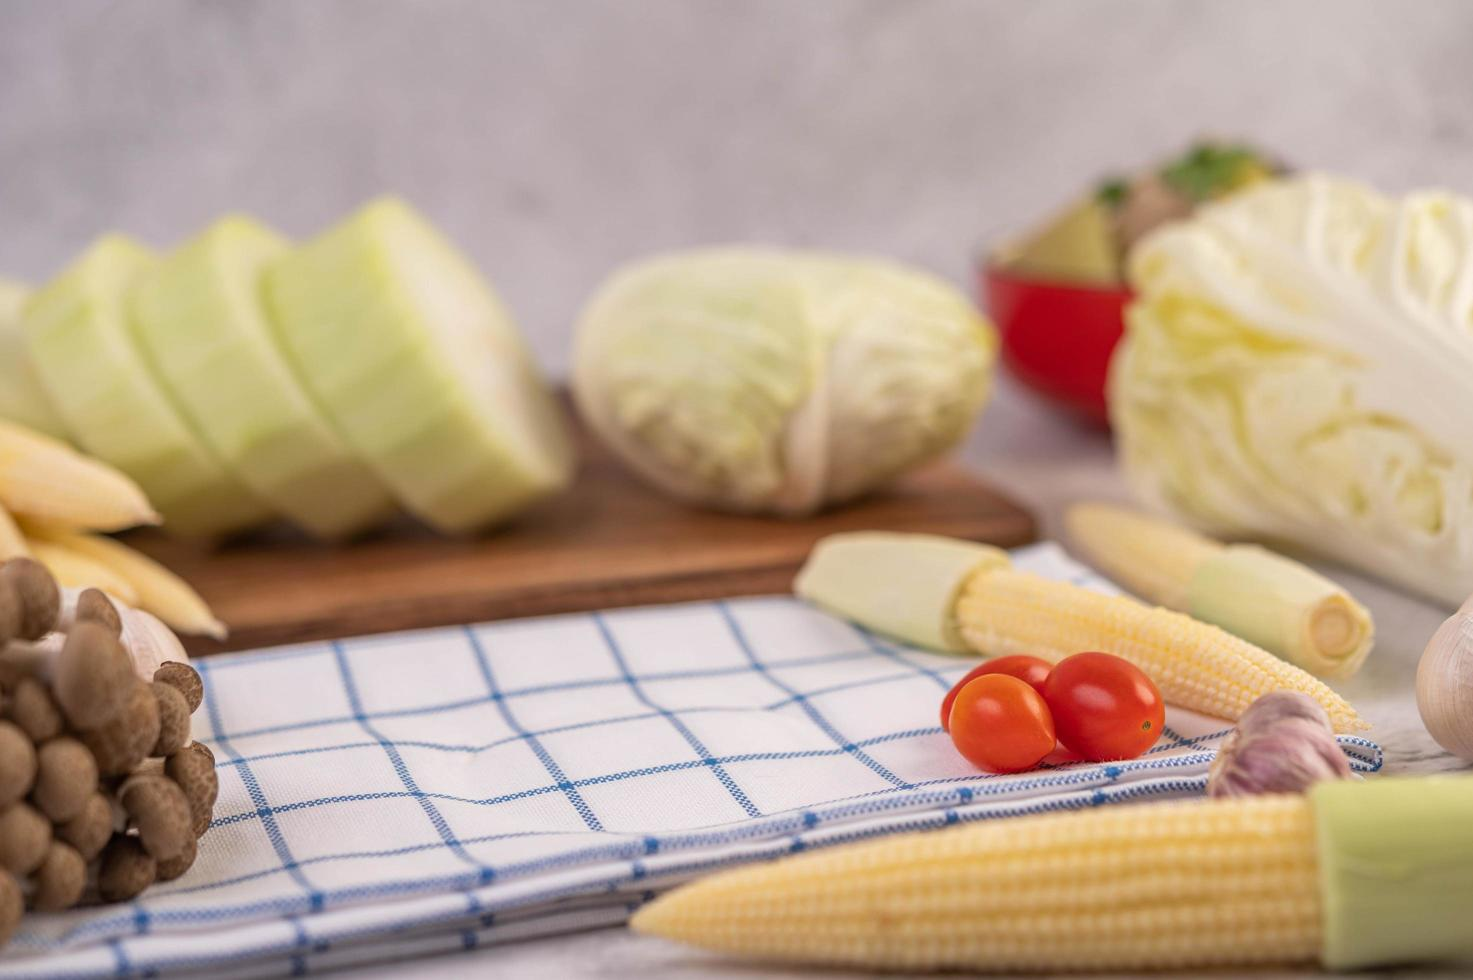 Baby corn, tomatoes, cabbage and mushrooms photo